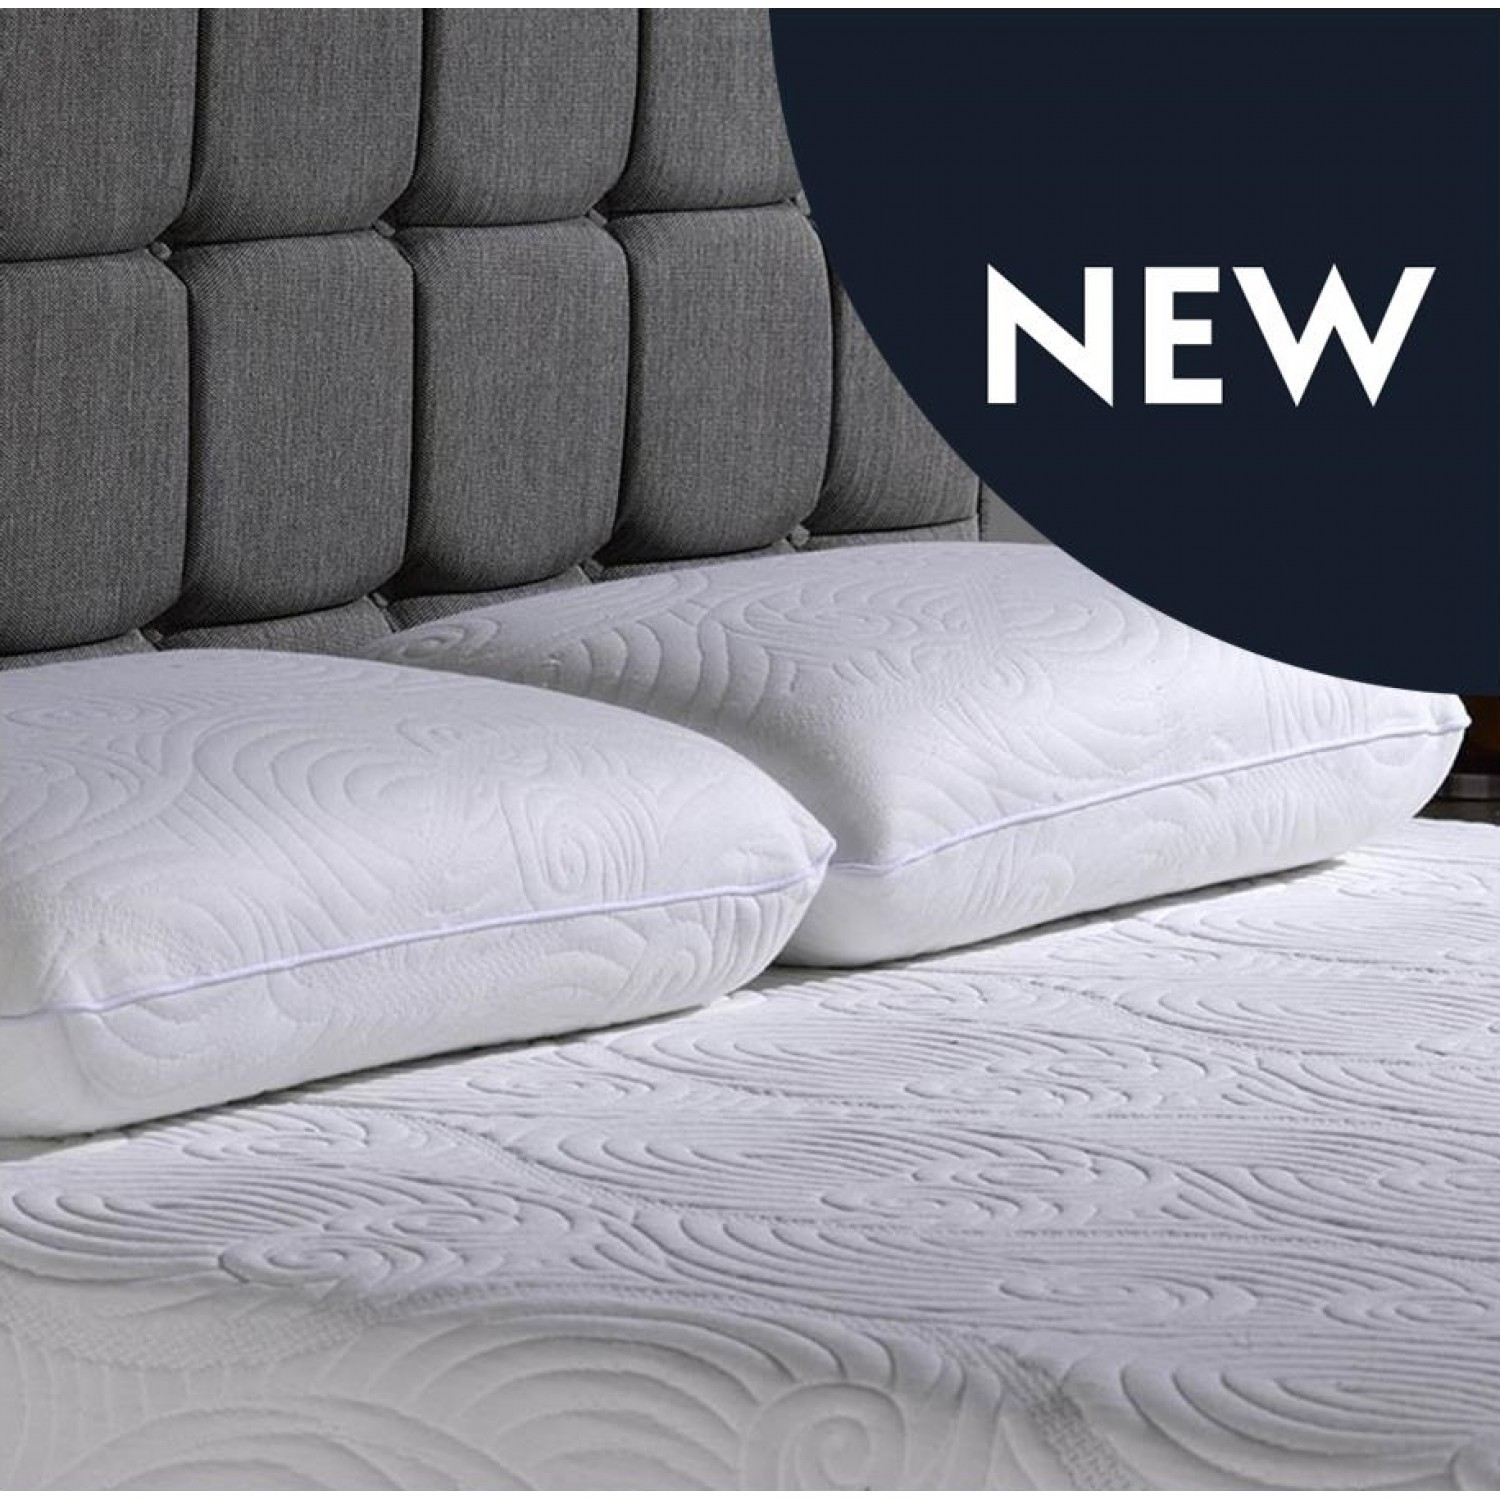 FROM £24 99 V40 Pair Memory Foam Pillows With Cool Max Cover 50